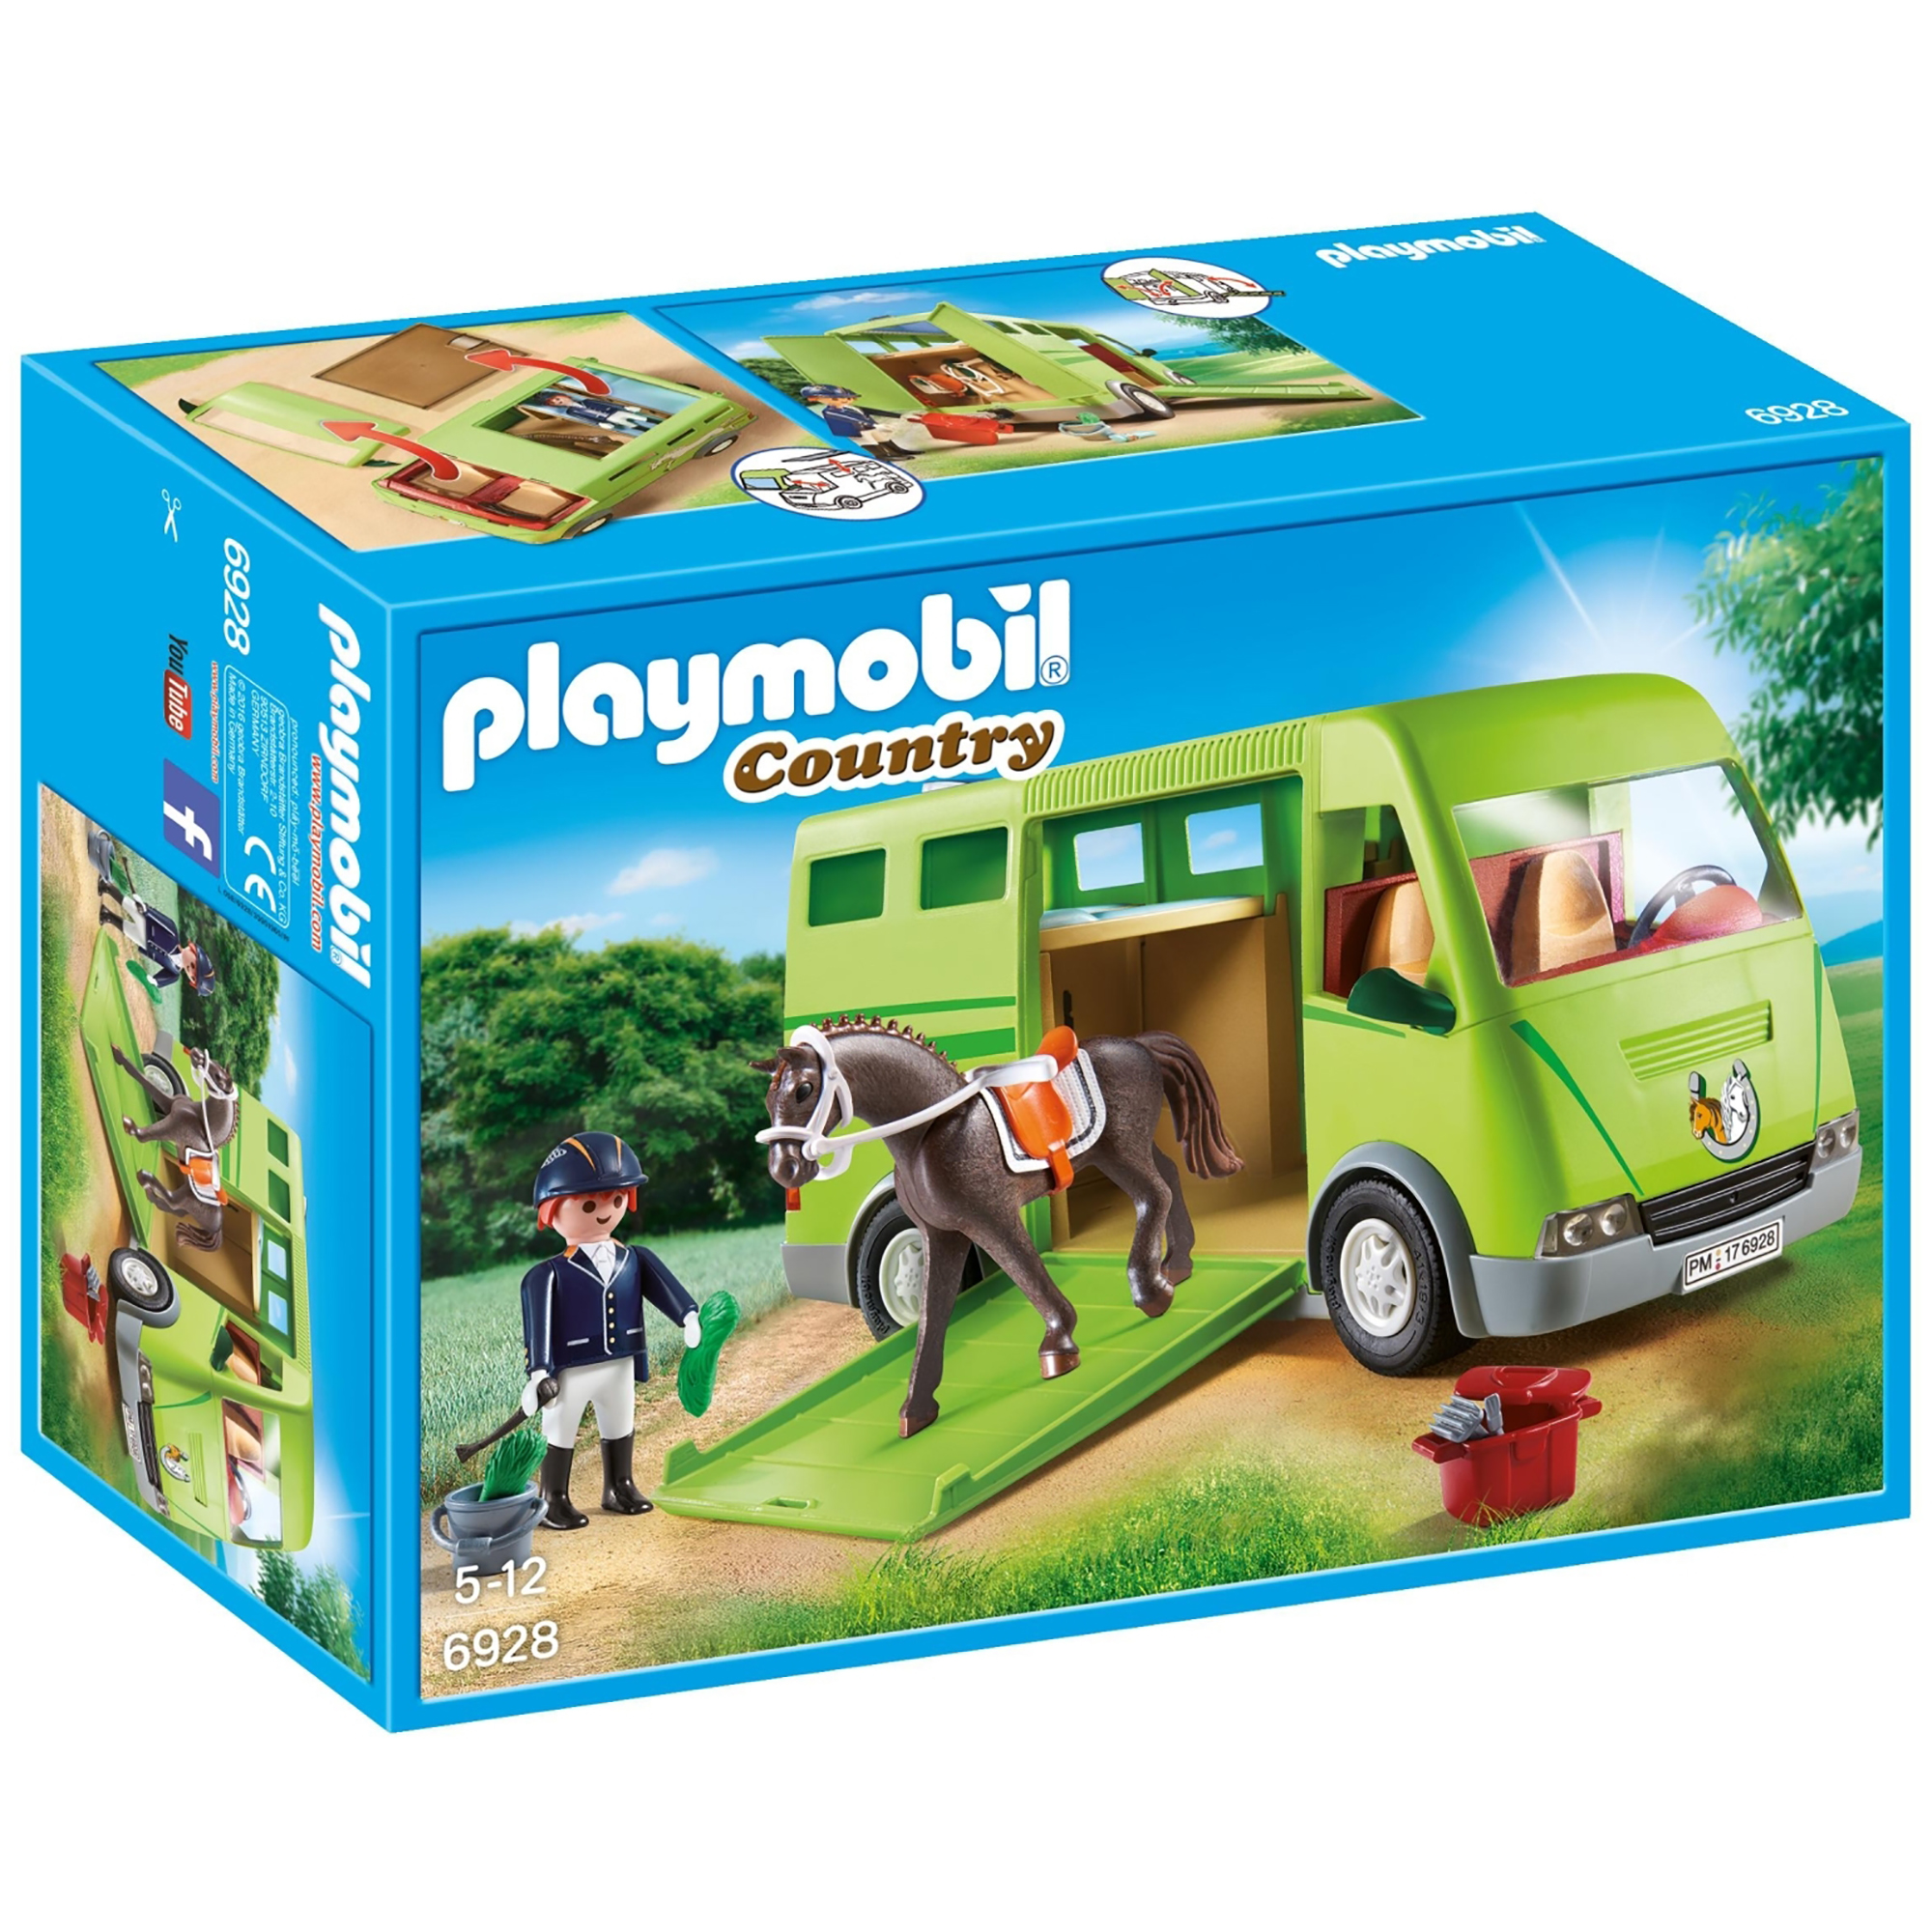 Picture of Playmobil Country Horse Box With Opening Side Door 6928